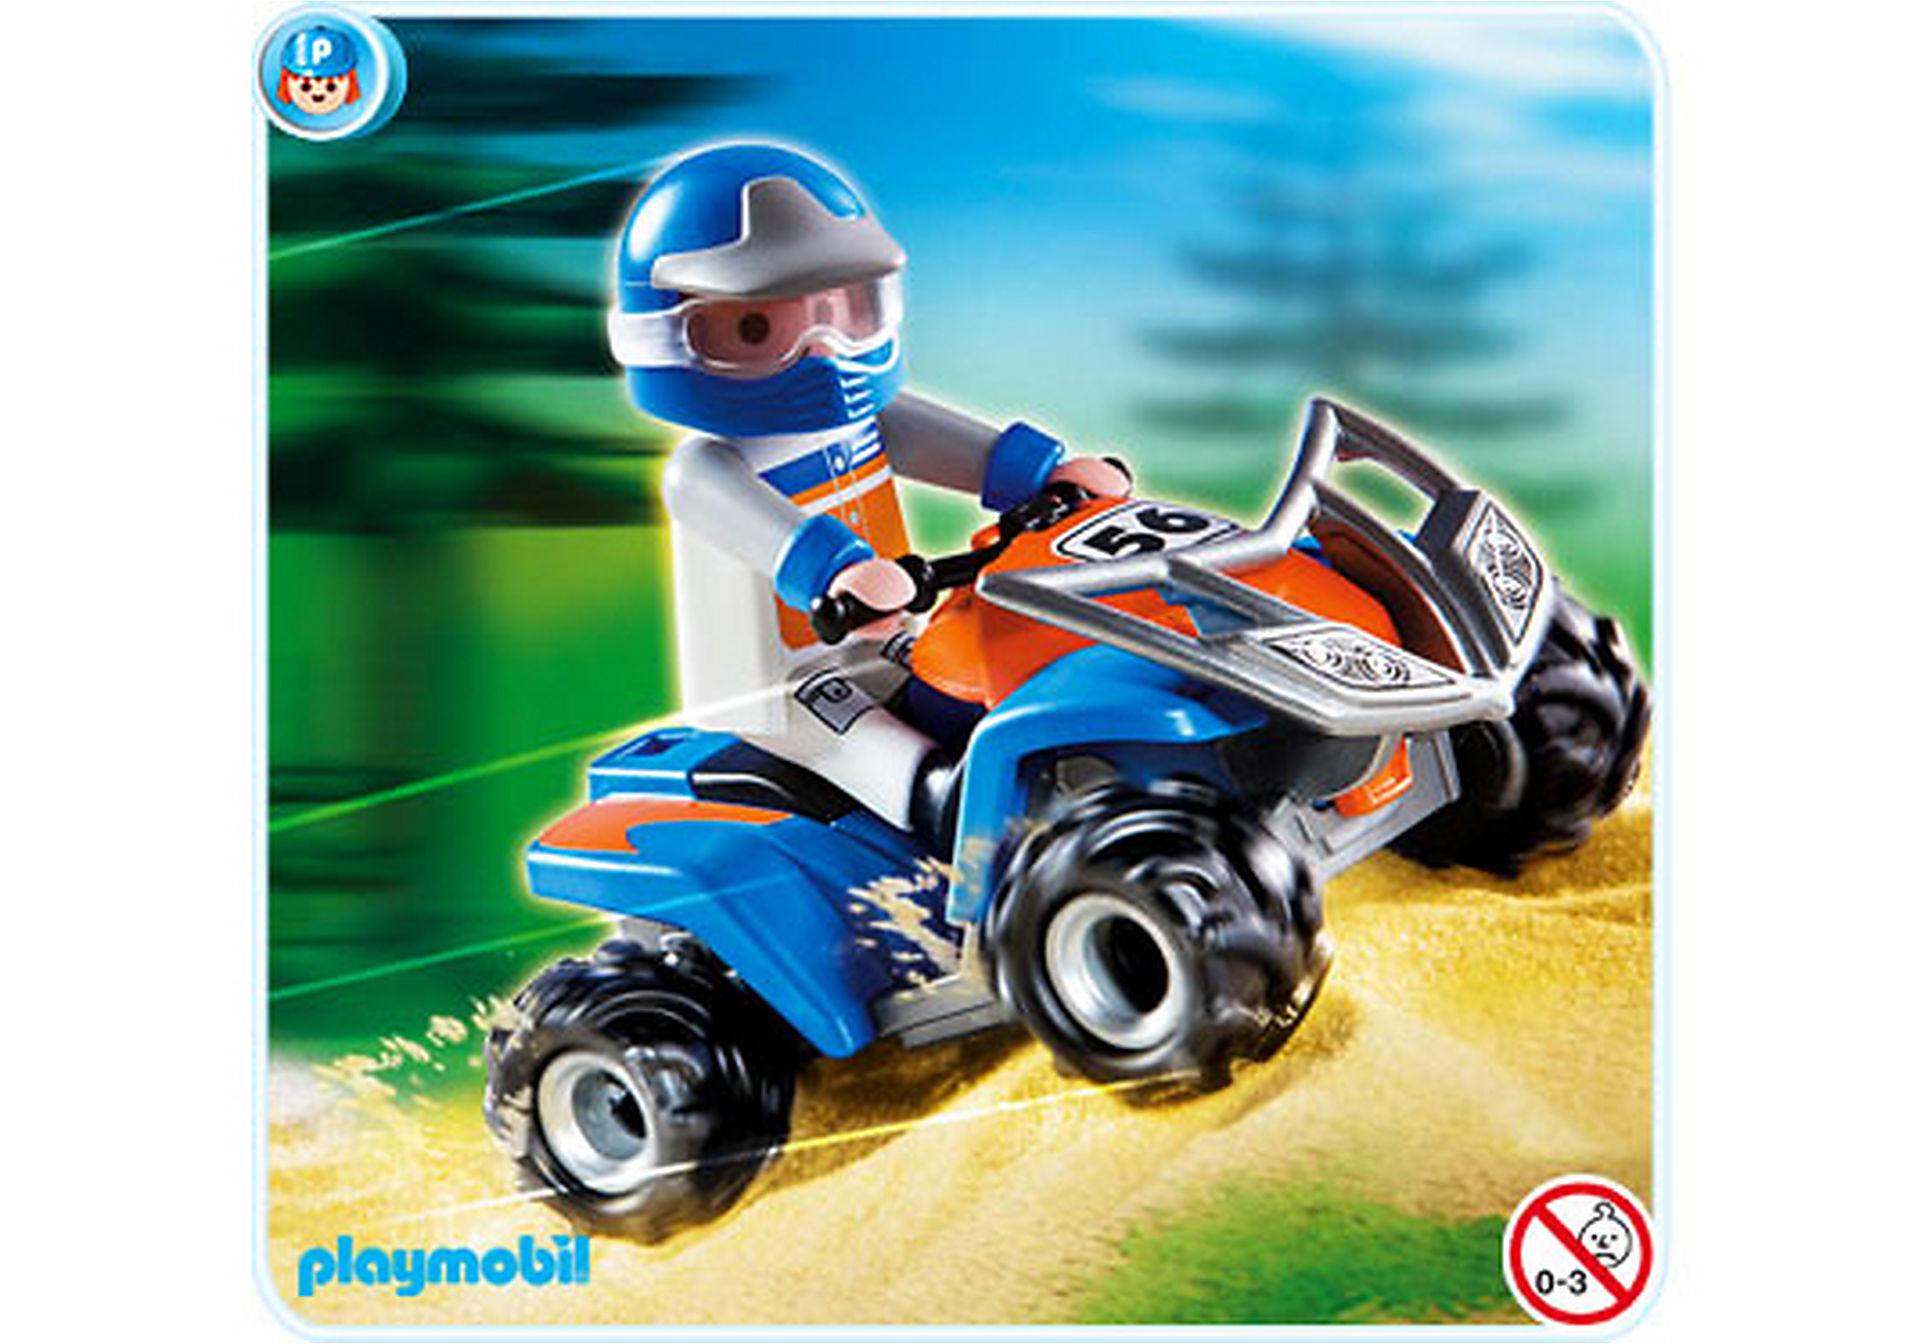 http://media.playmobil.com/i/playmobil/4229-A_product_detail/Quad de course bleu